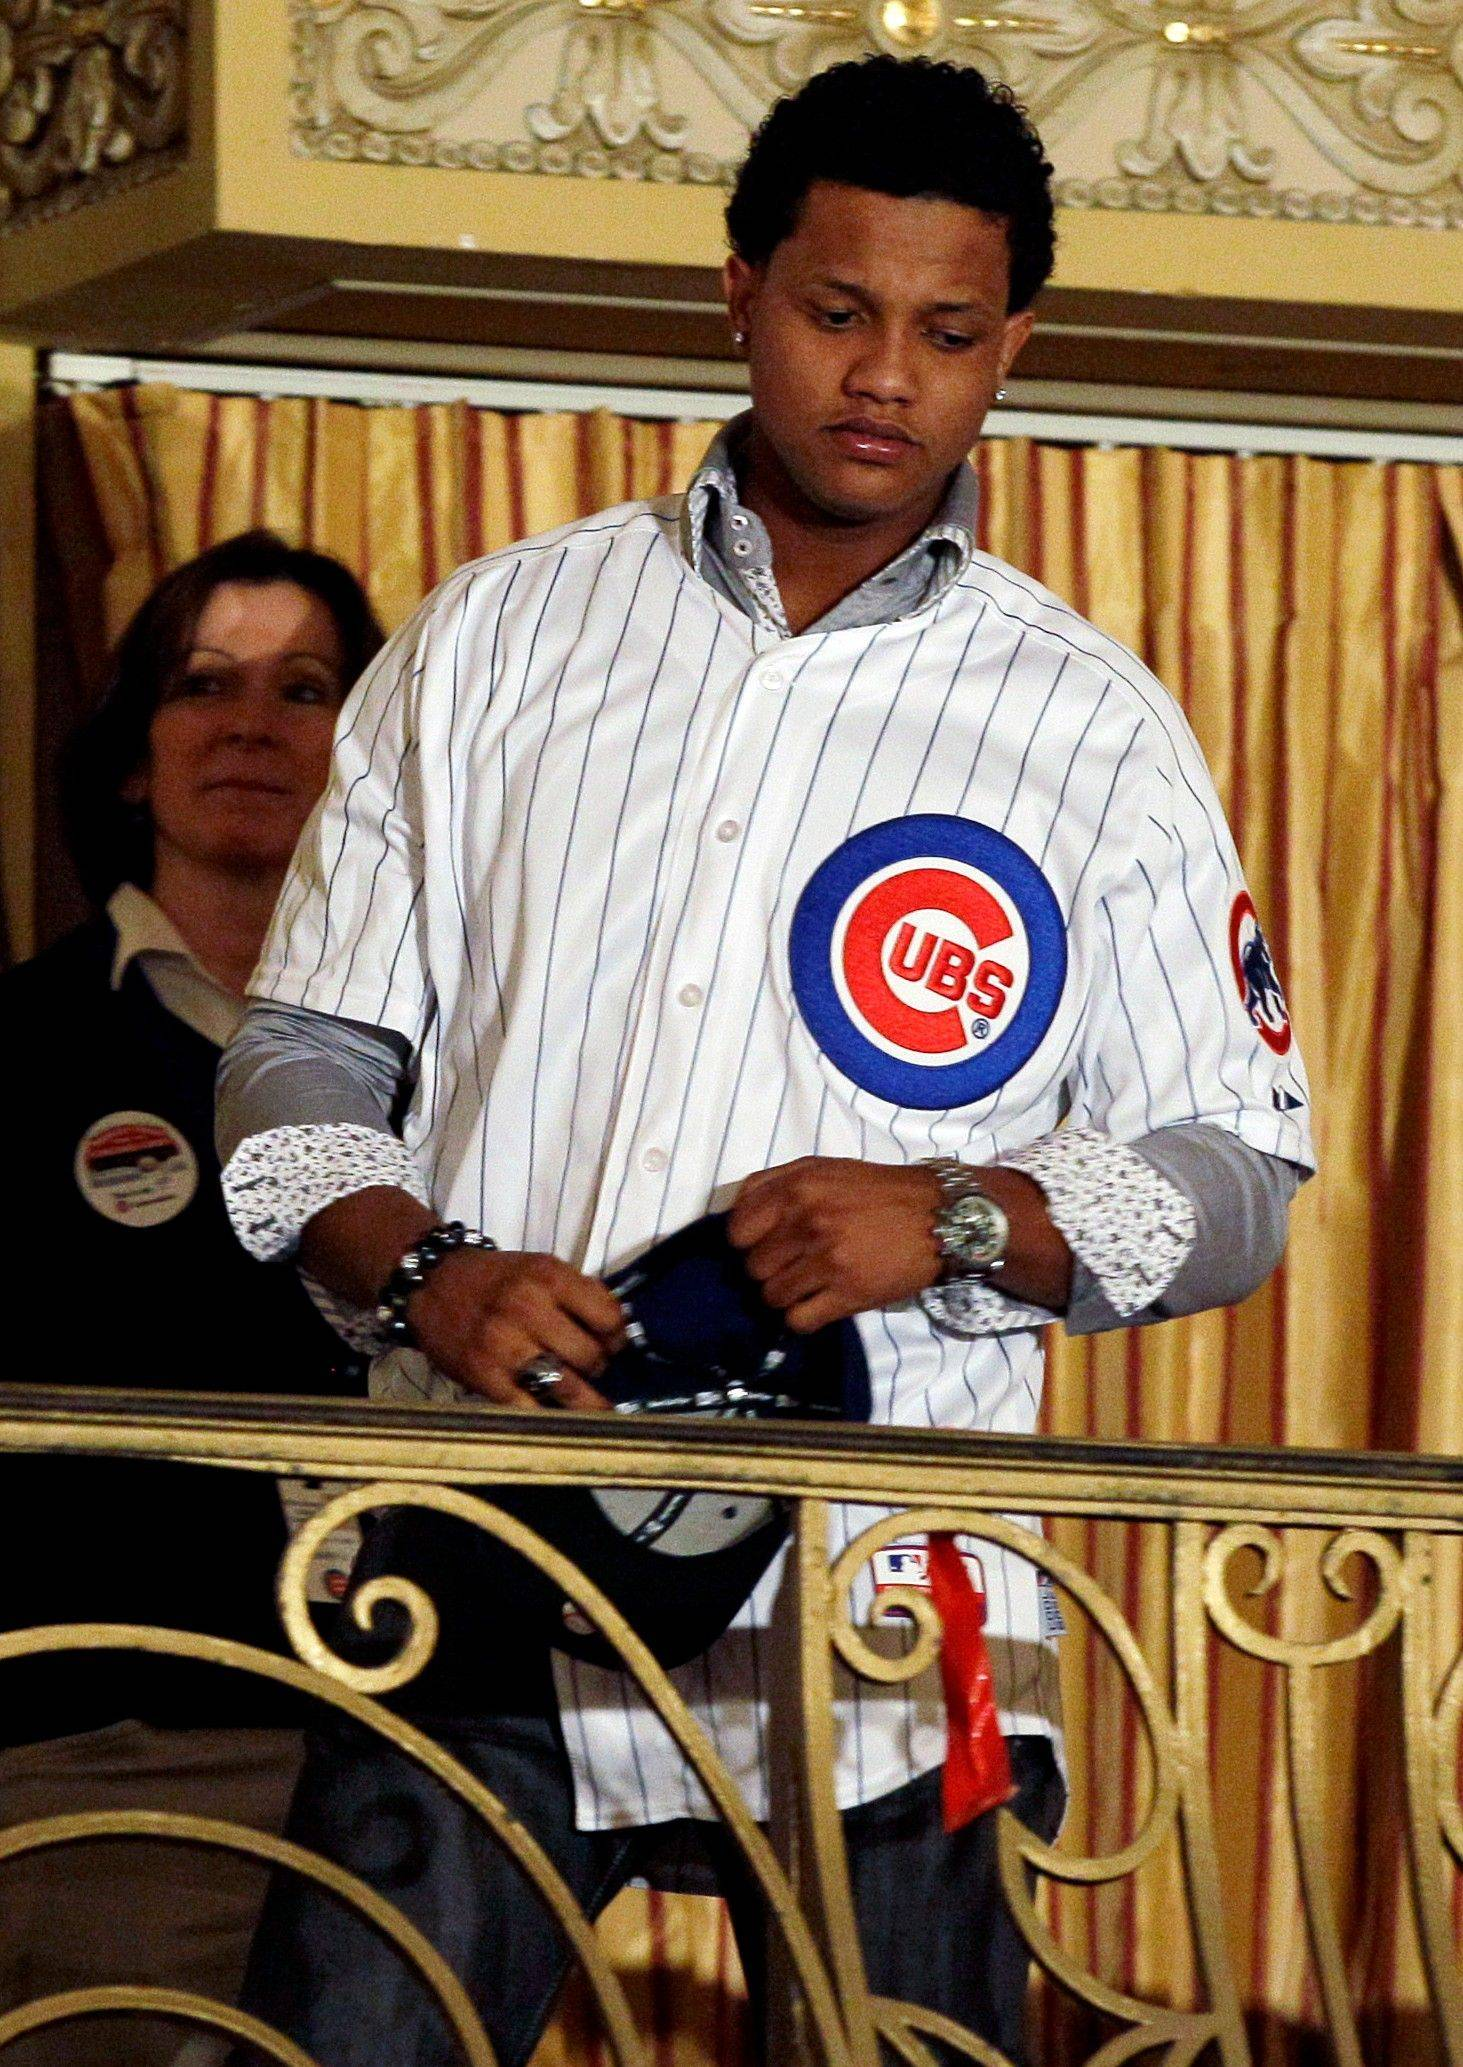 Chicago Cubs infielder Starlin Castro looks down during the 27th Annual Chicago Cubs Convention in Chicago on Friday, Jan. 13, 2012.